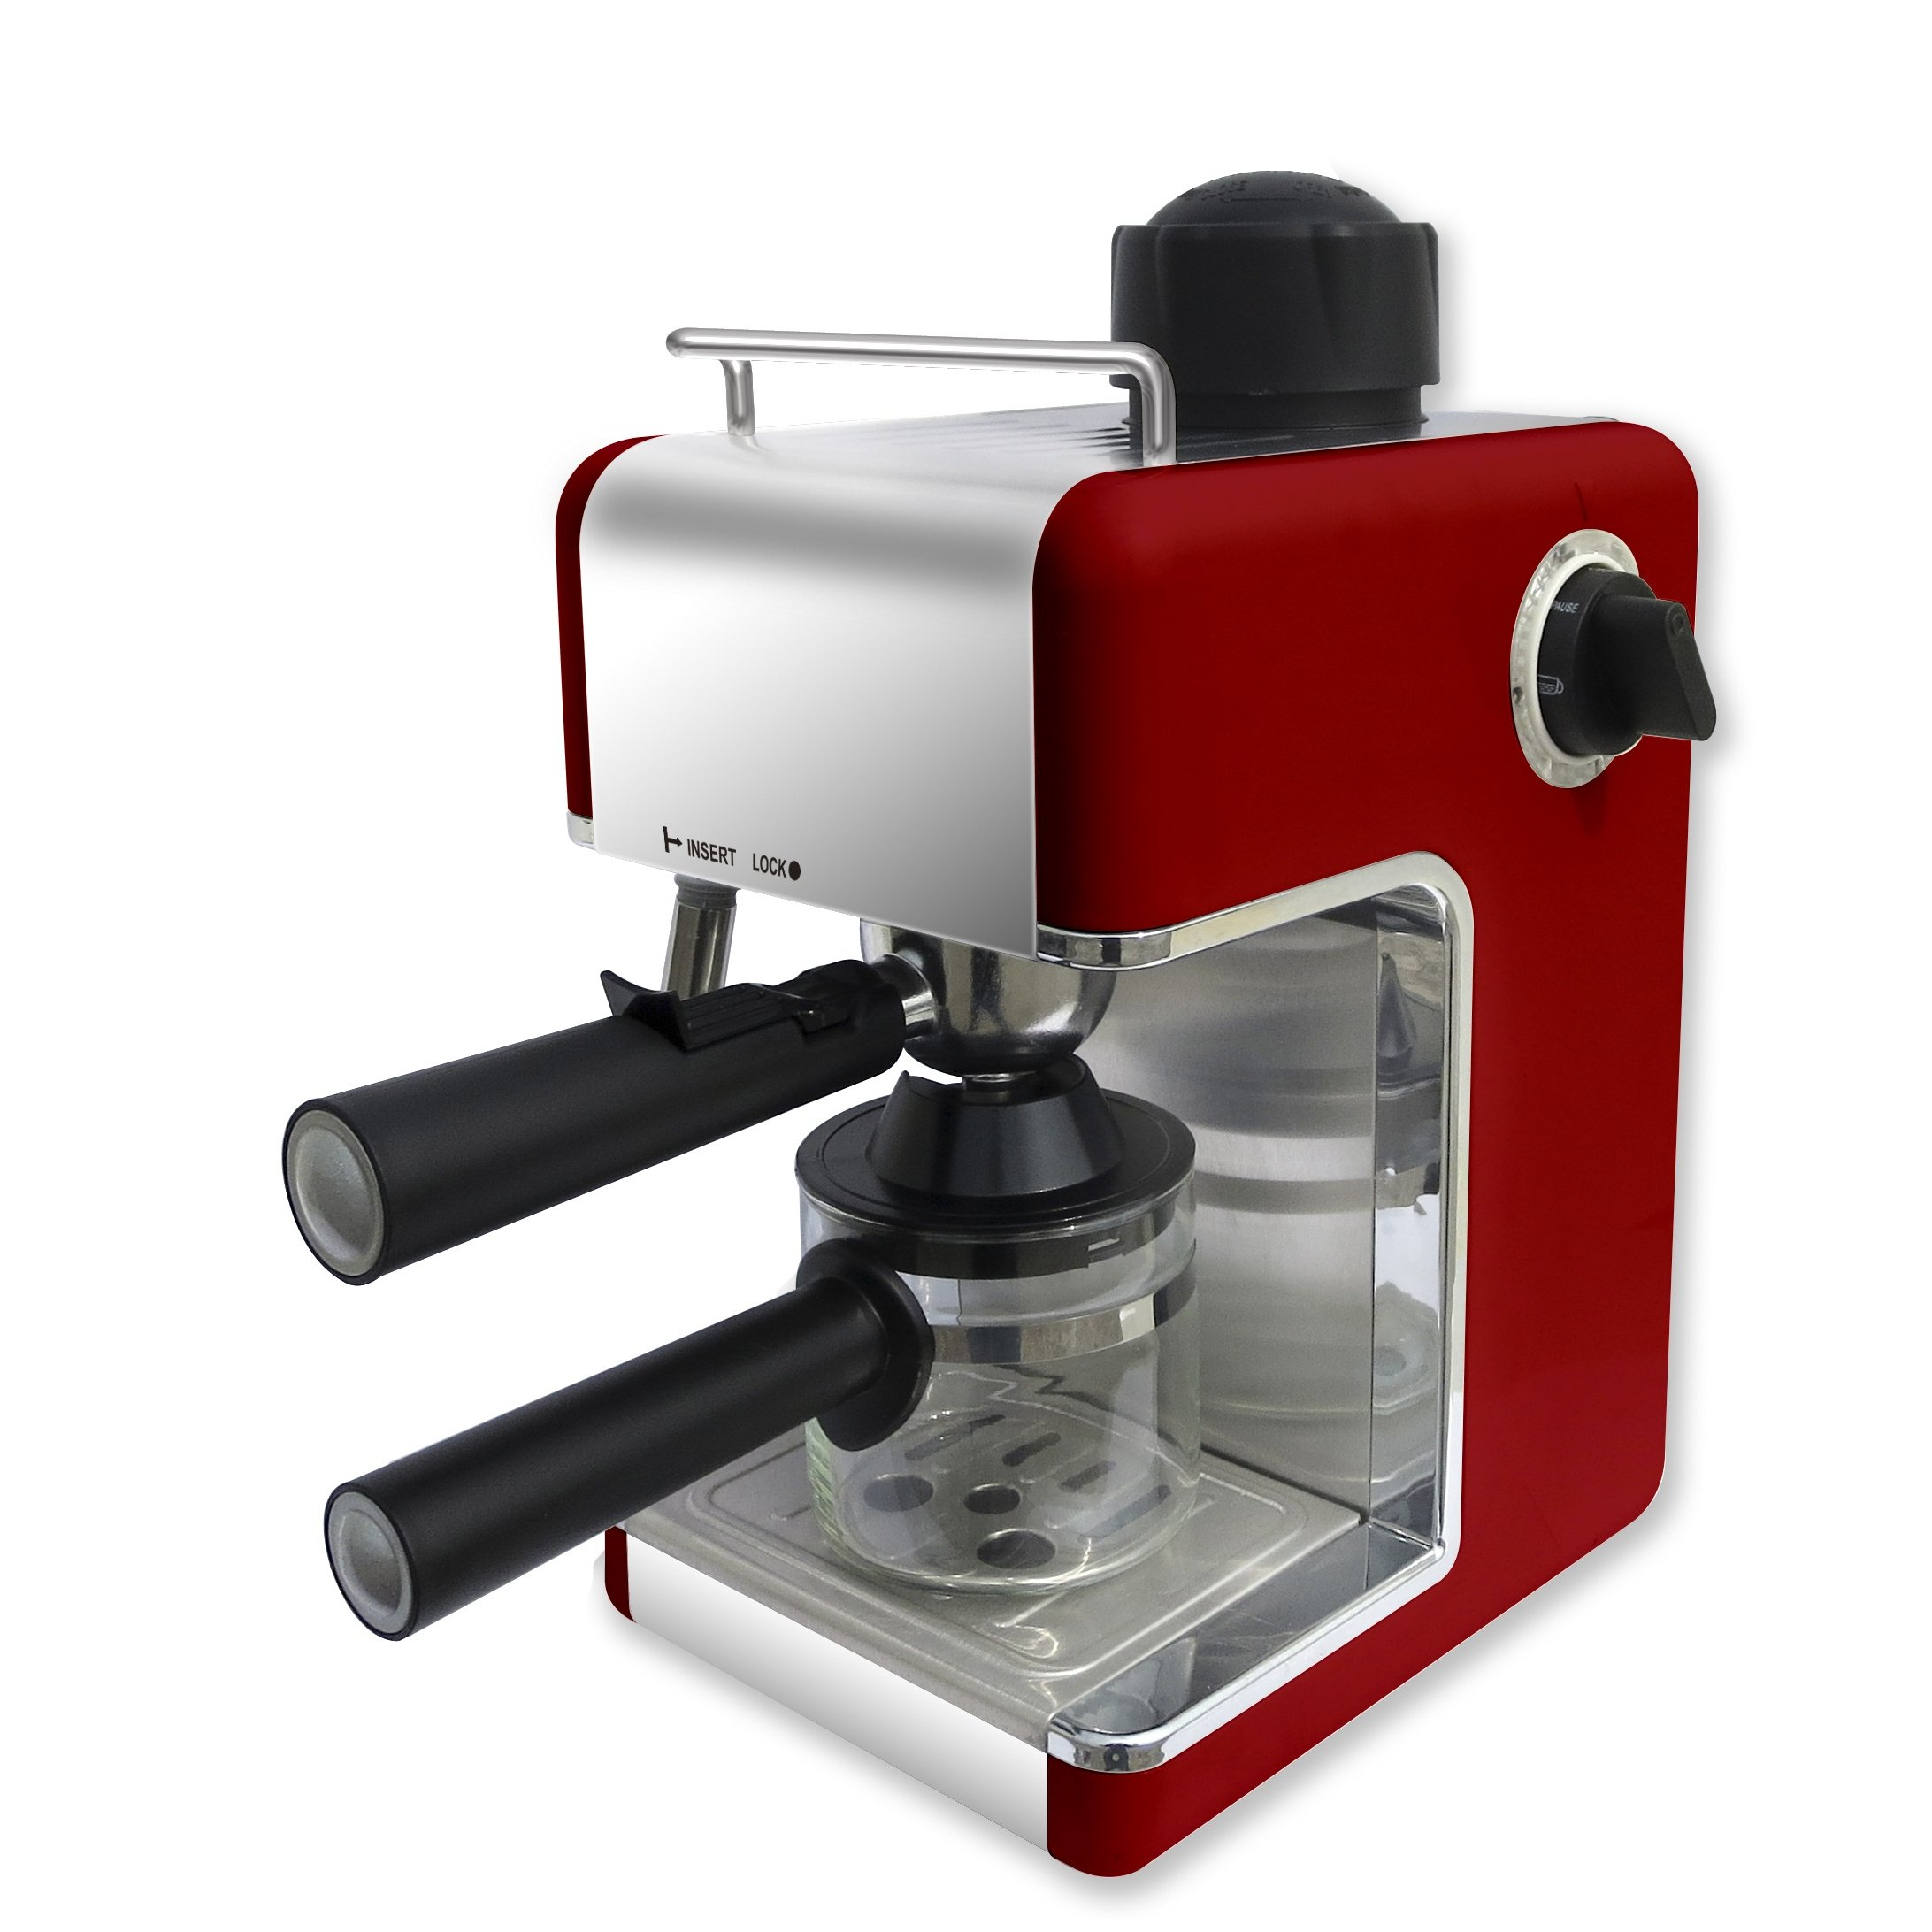 Bene Casa BC-99148 4-Cup Red Espresso Maker with Frother by MBR